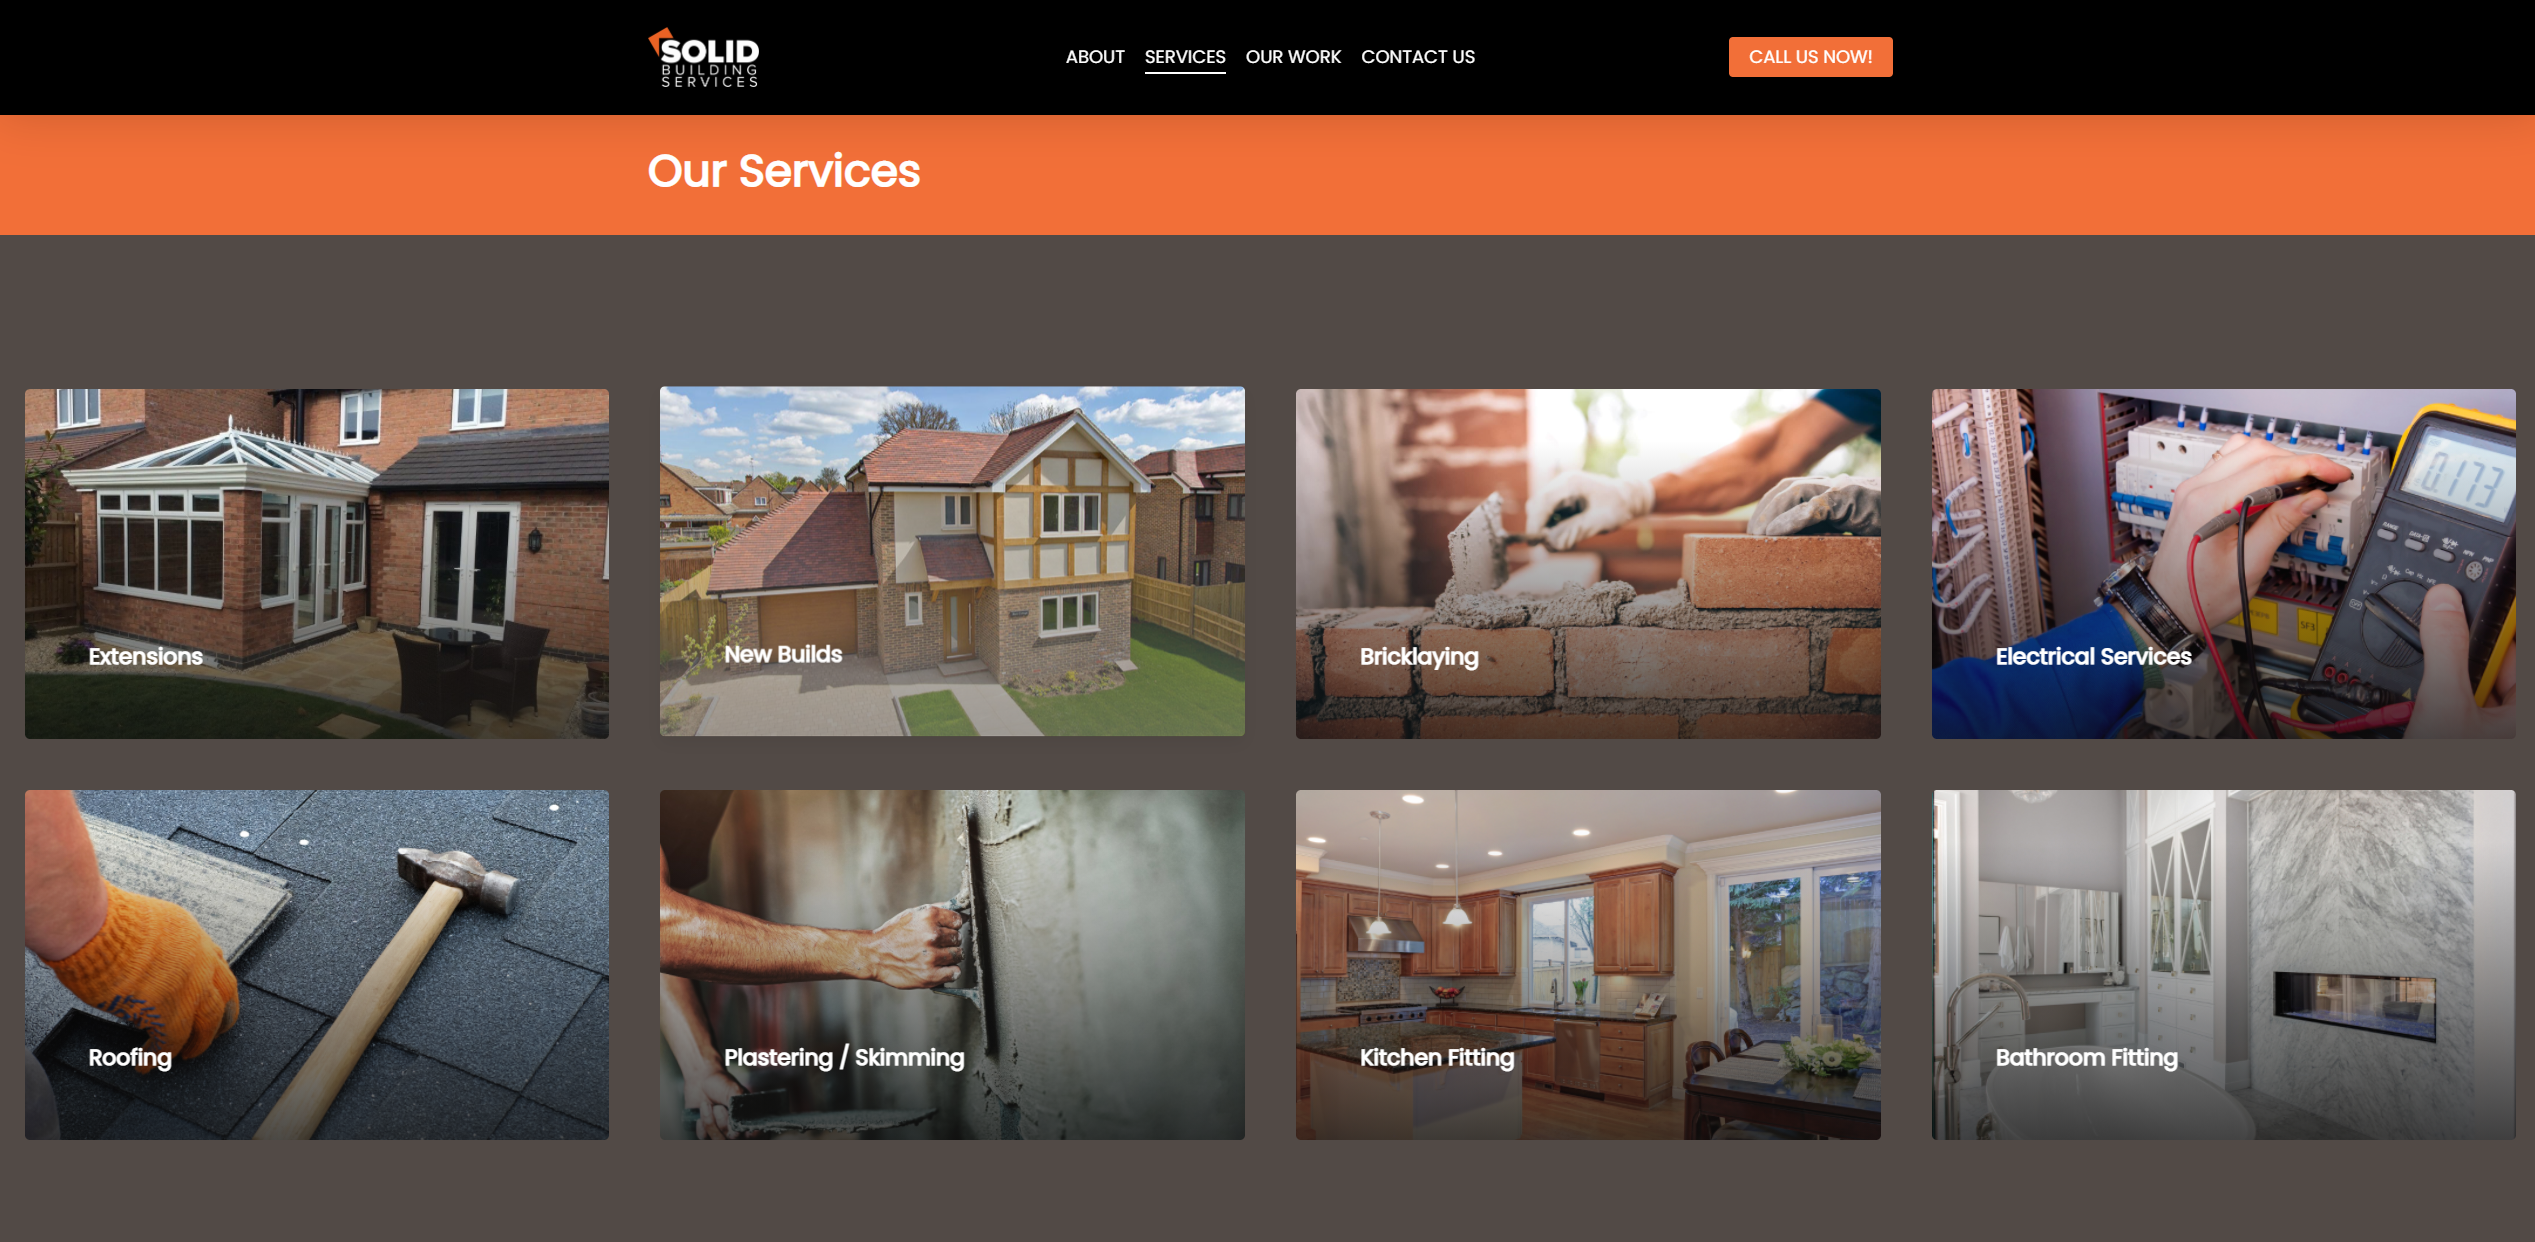 Solid Building Services